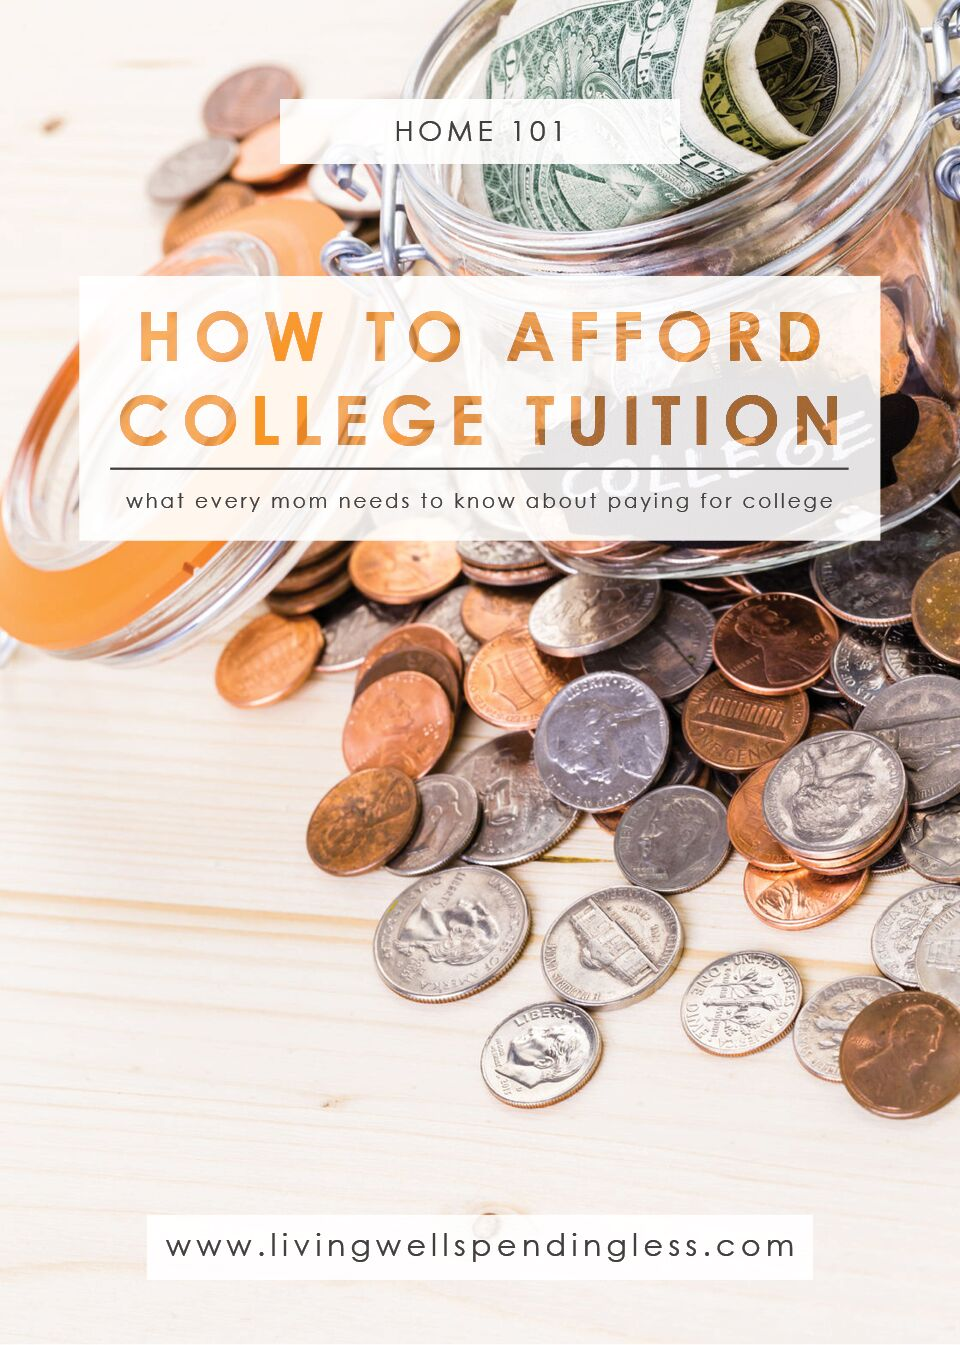 How to afford college tuition.